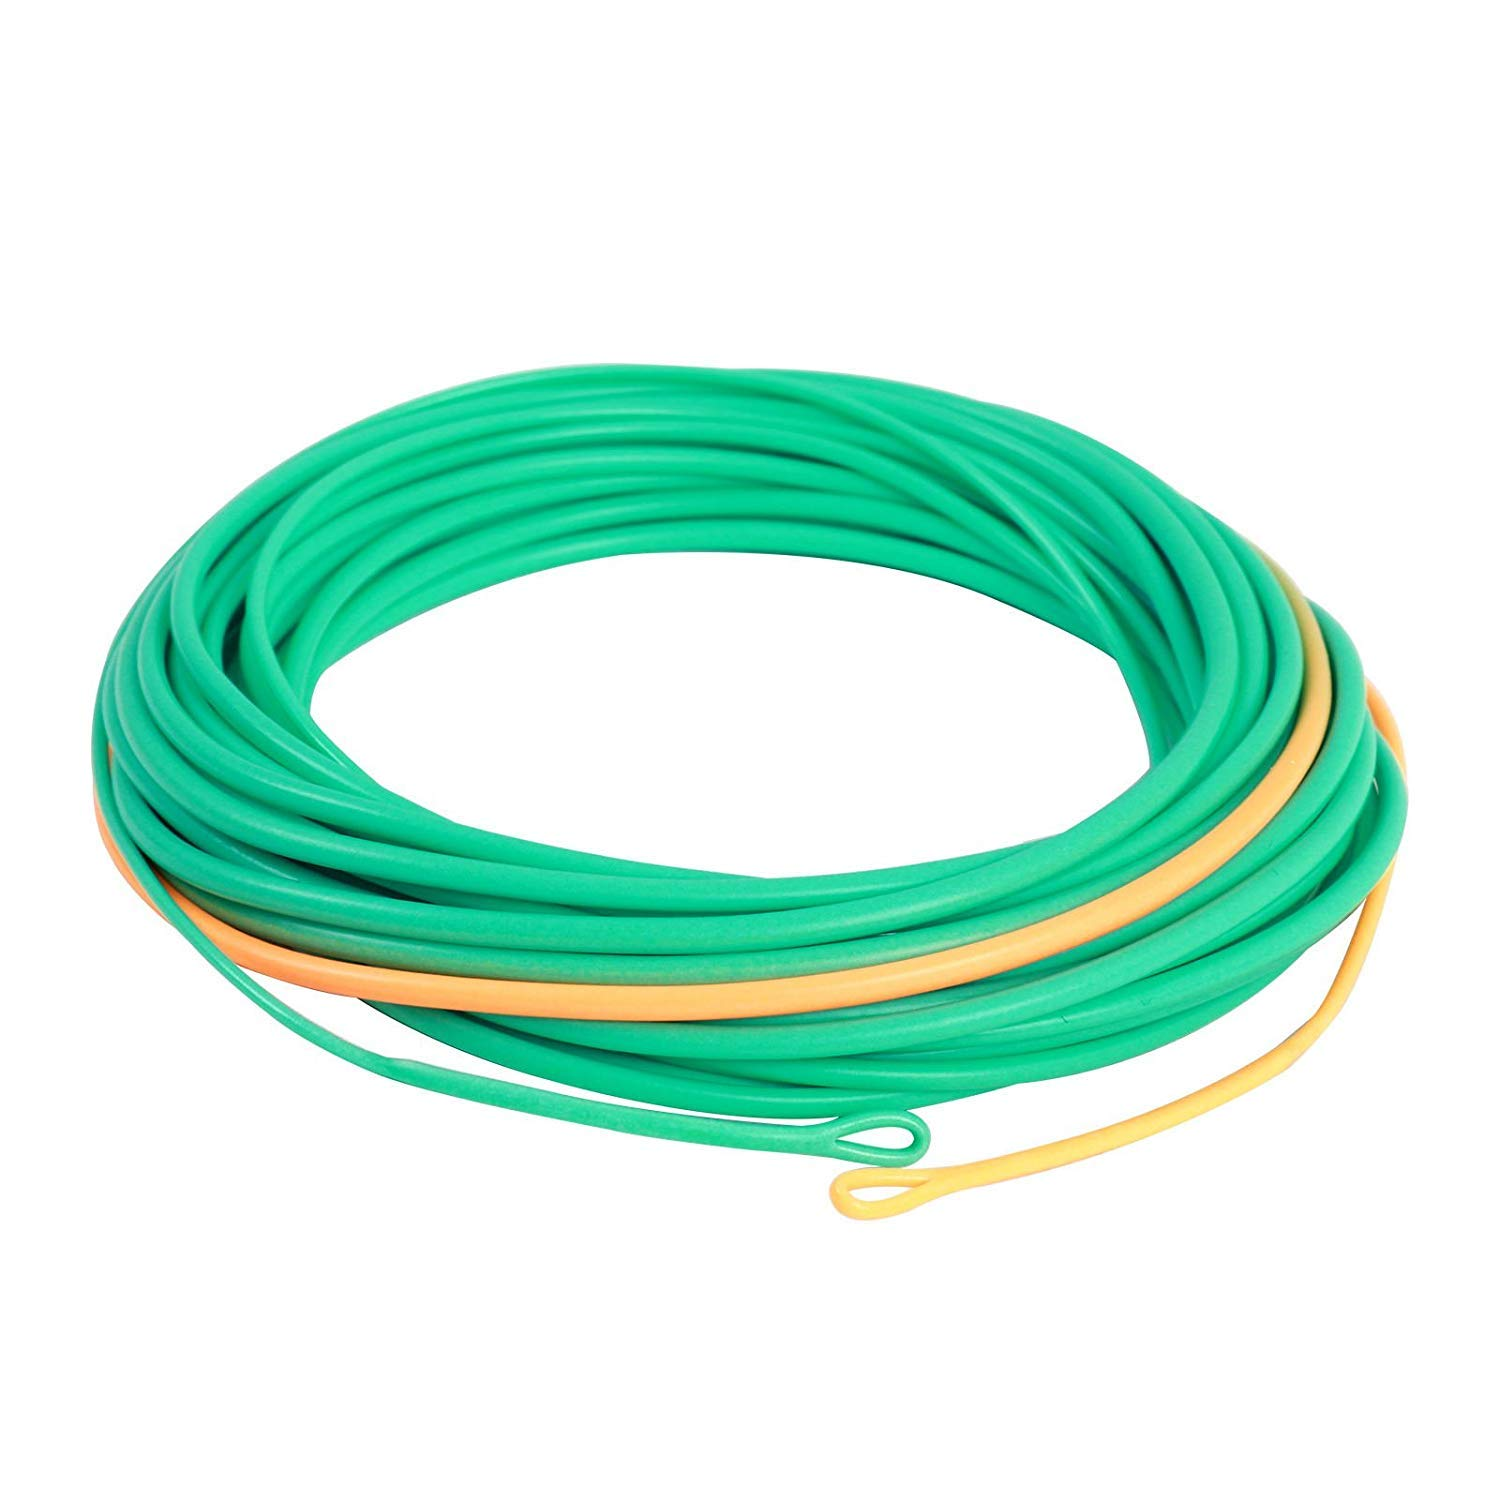 MAXIMUMCATCH Skagit Shooting Head Fly Line 200GR-650GR 17FT-29FT with 2 Welded Loops